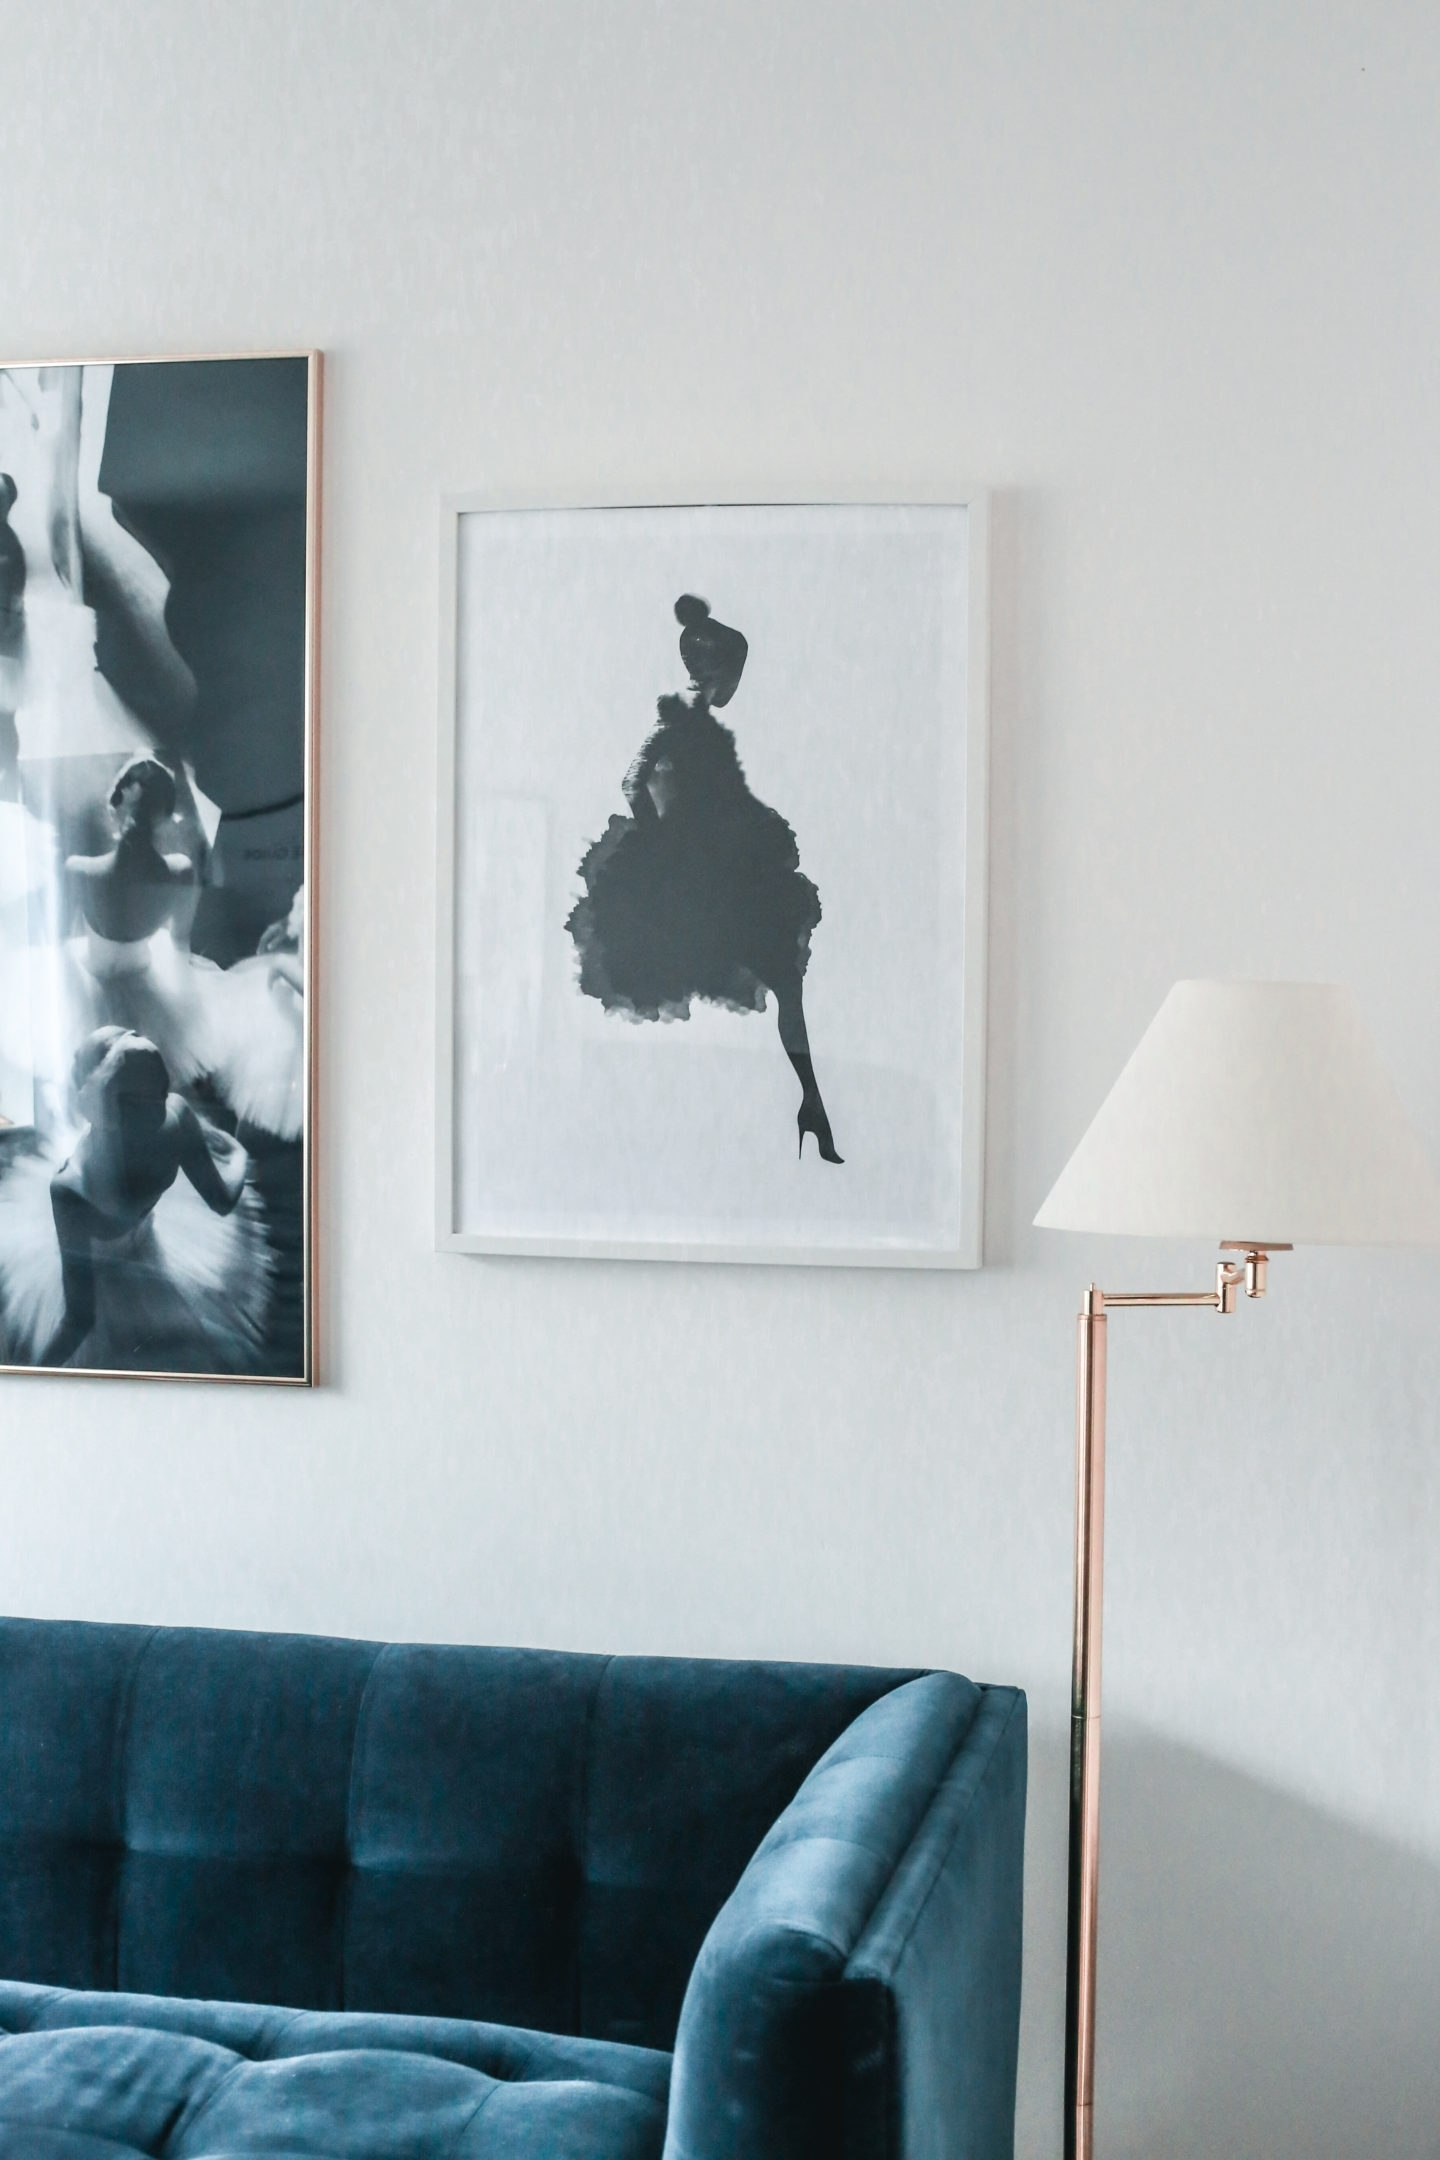 Affordable Wall Art You'll Love From Desenio – Launeden With Regard To Recent Affordable Wall Art (View 6 of 20)